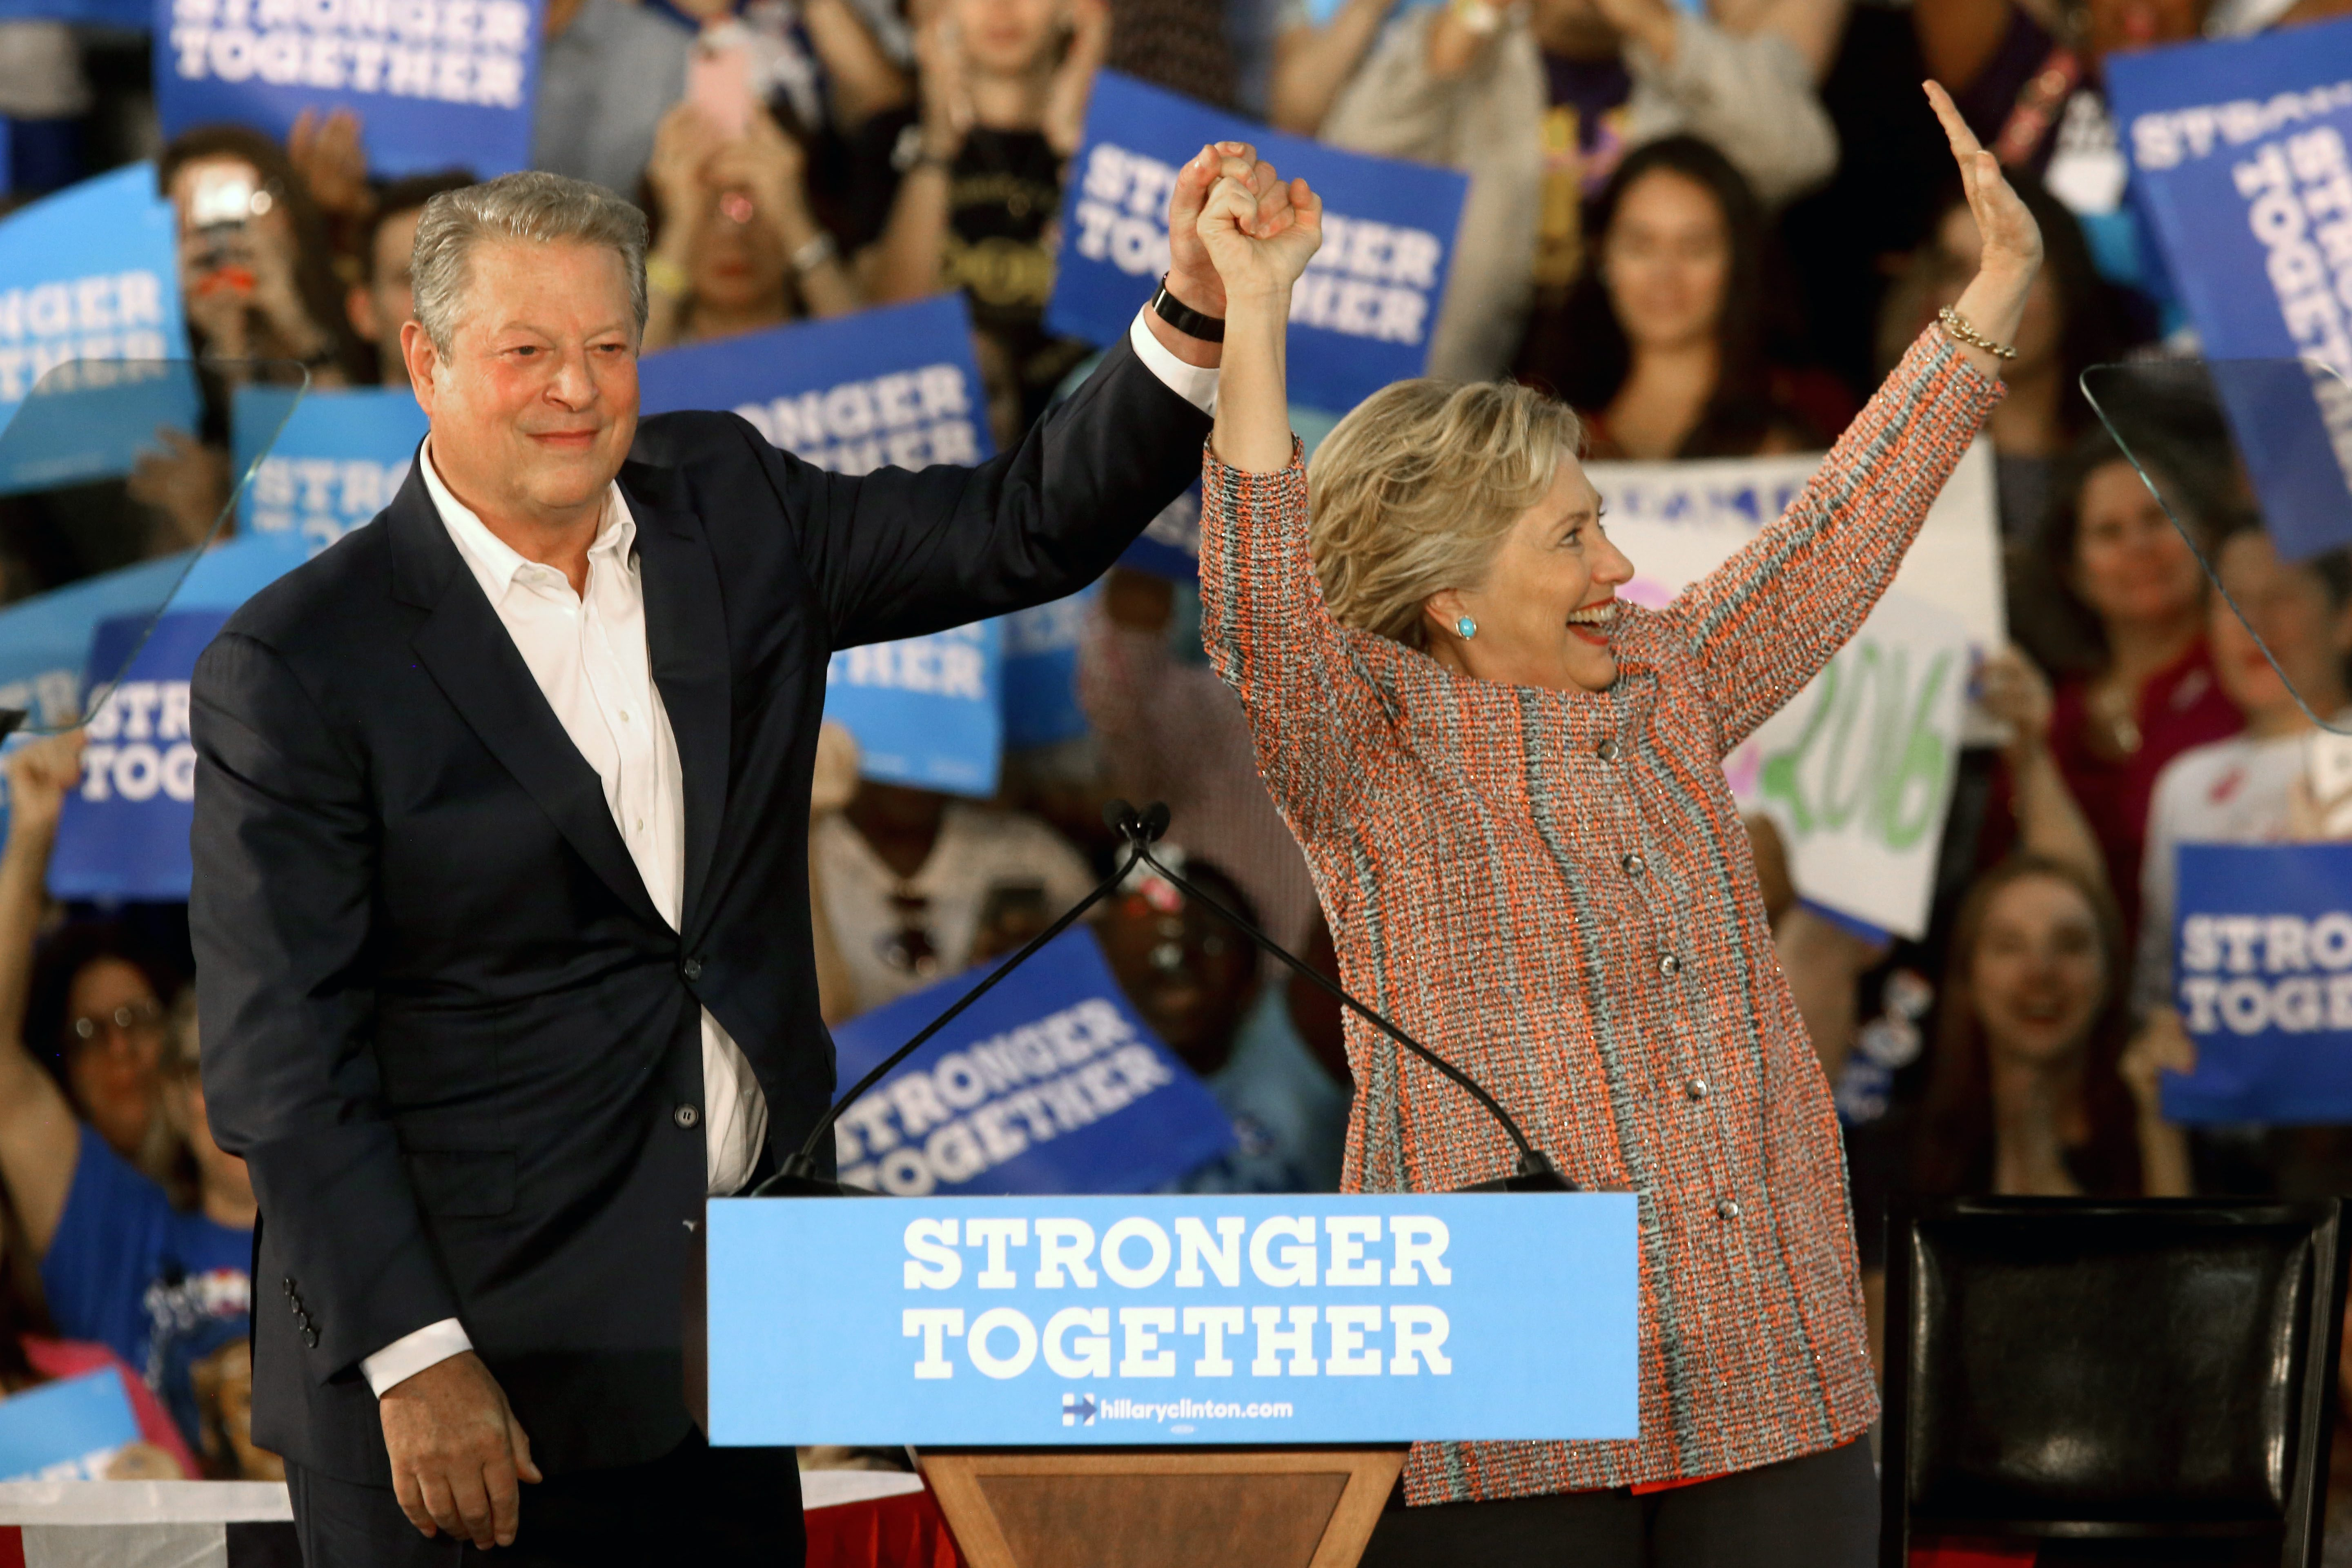 Al Gore returns to the campaign trail, beside another Clinton